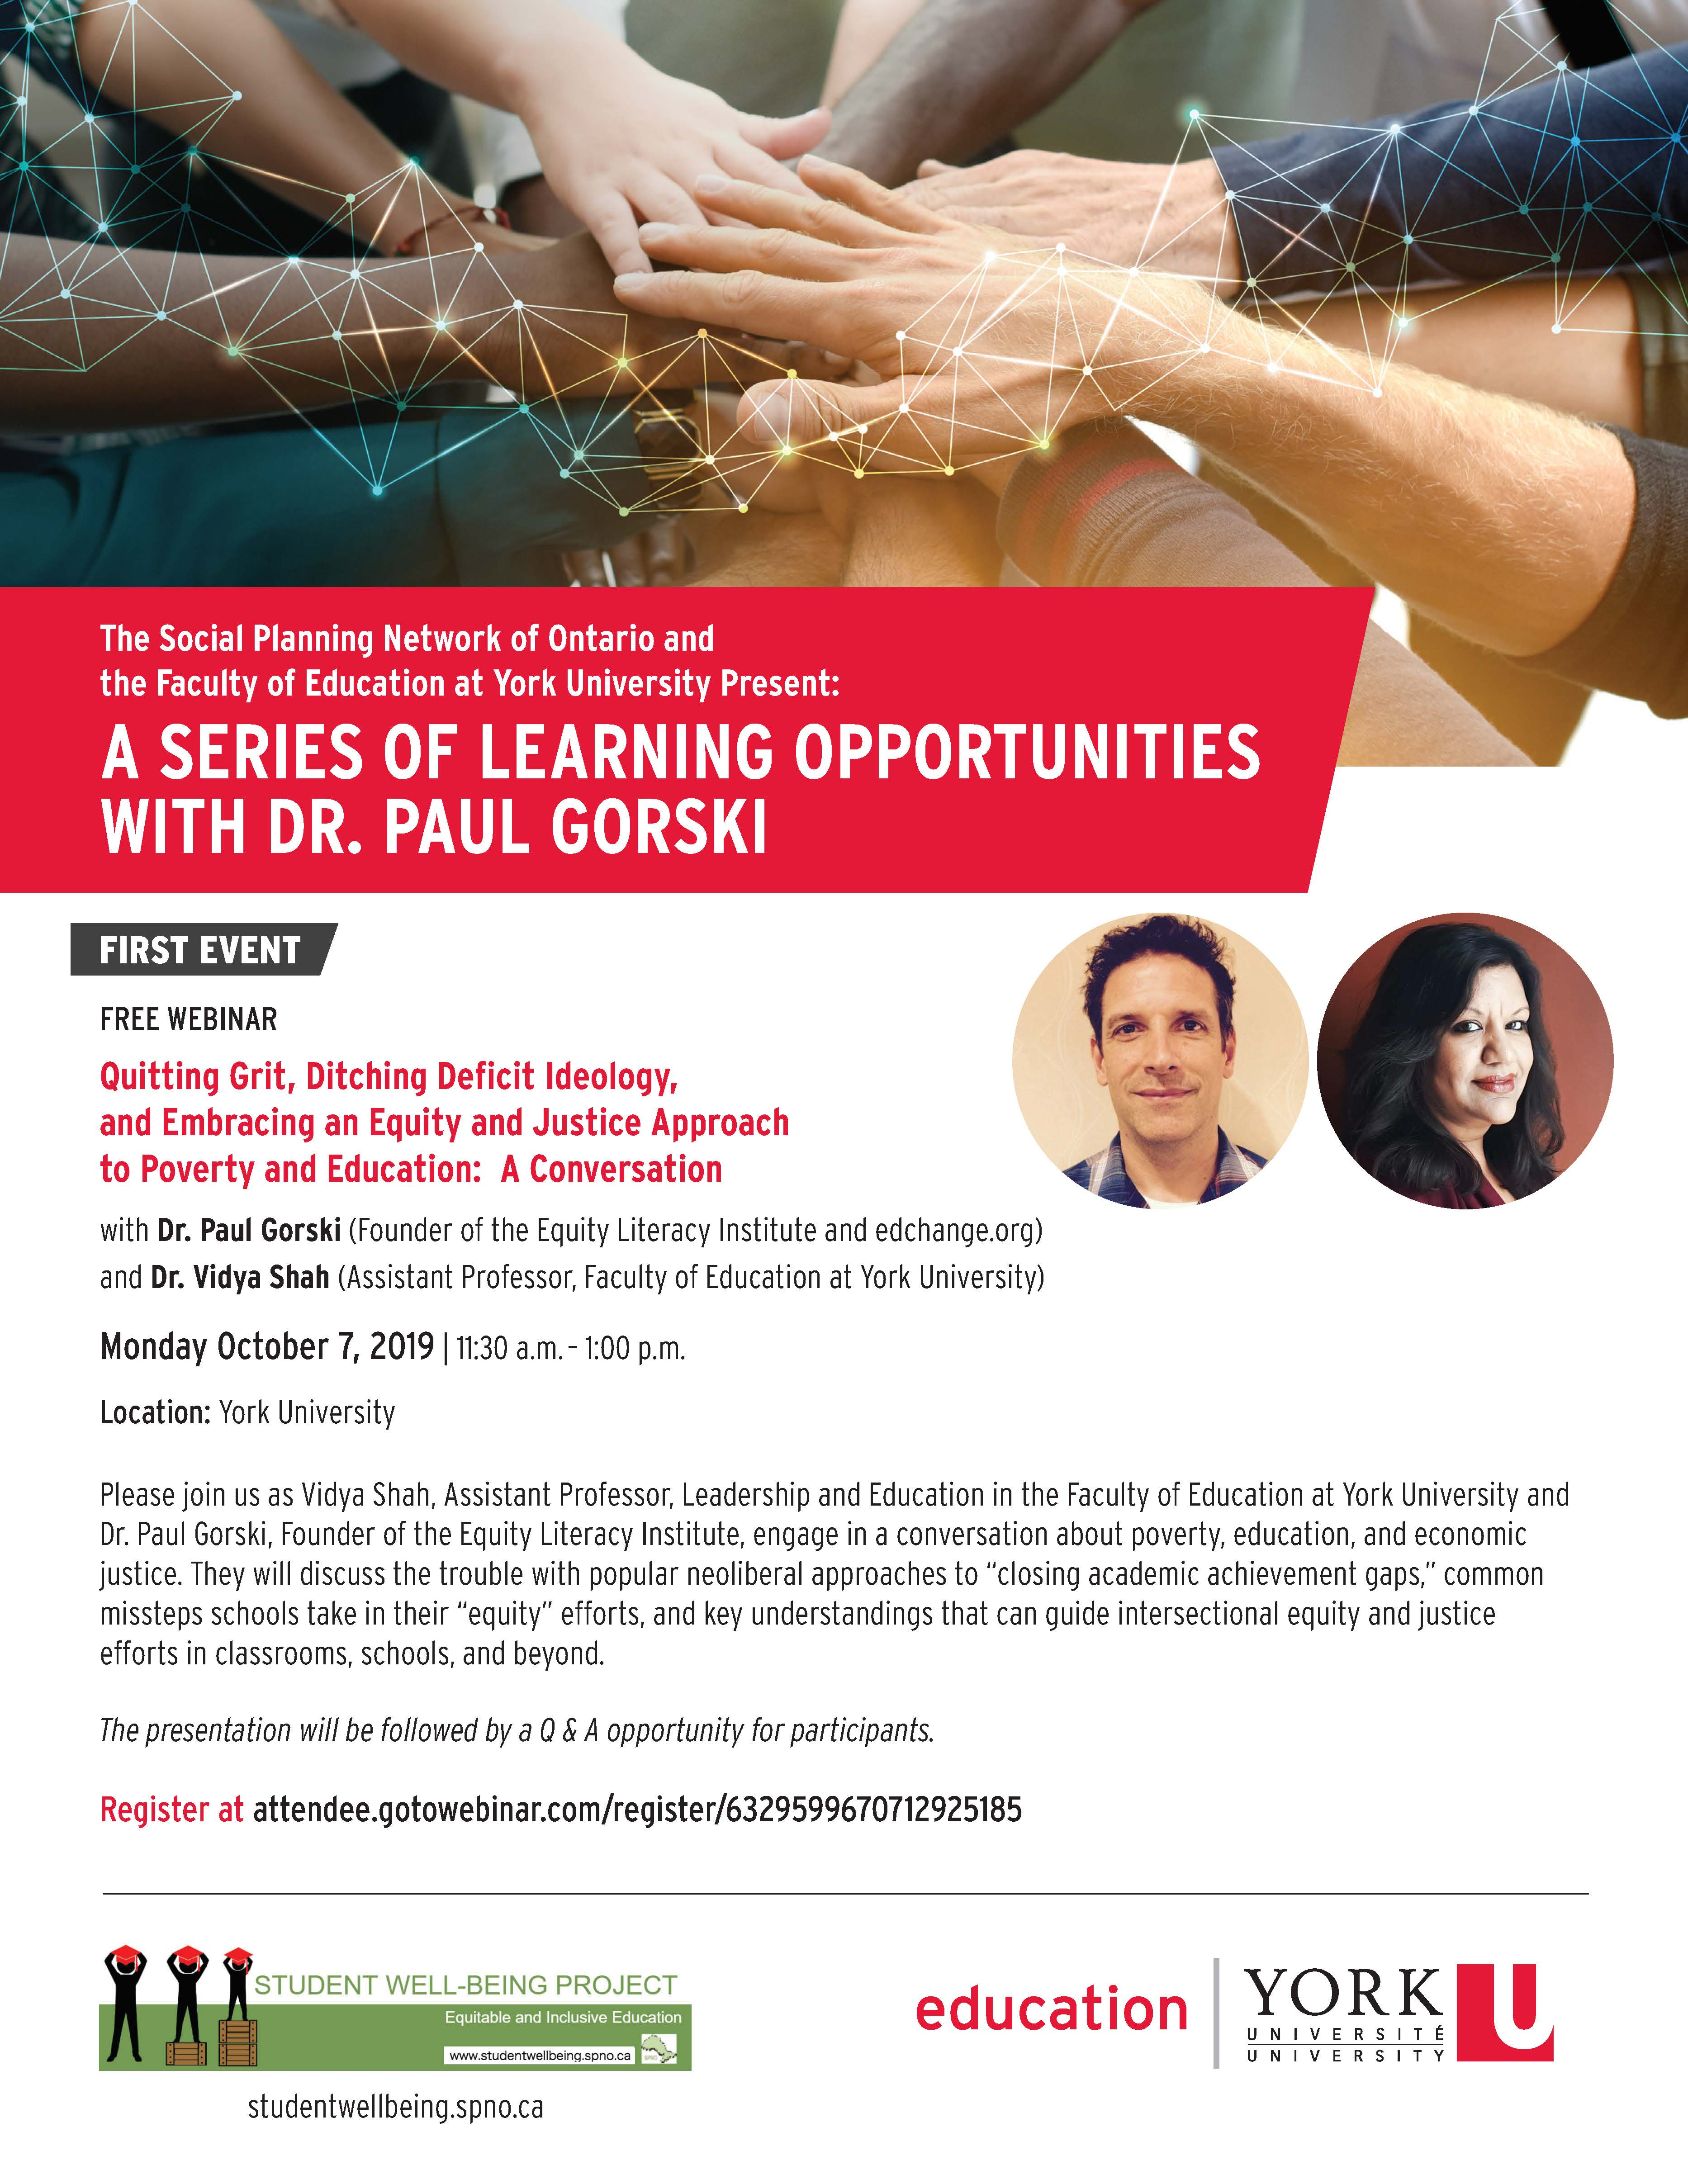 FREE WEBINAR - Quitting Grit, Ditching Deficit Ideology, and Embracing an Equity and Justice Approach to Poverty and Education @ York University